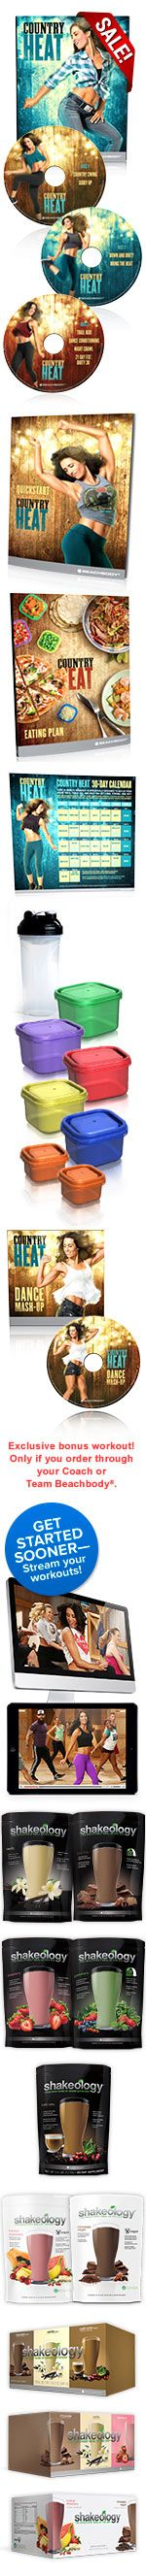 Team Beachbody - Country Heat  The brand new Country Heat challenge packs are out. Can find here:  http://teambeachbody.com/shop/-/shopping/BCPCH160?referringRepId=1070477  If not interested in full challenge pack with the 30 days of Shakeology. Let me know any questions.